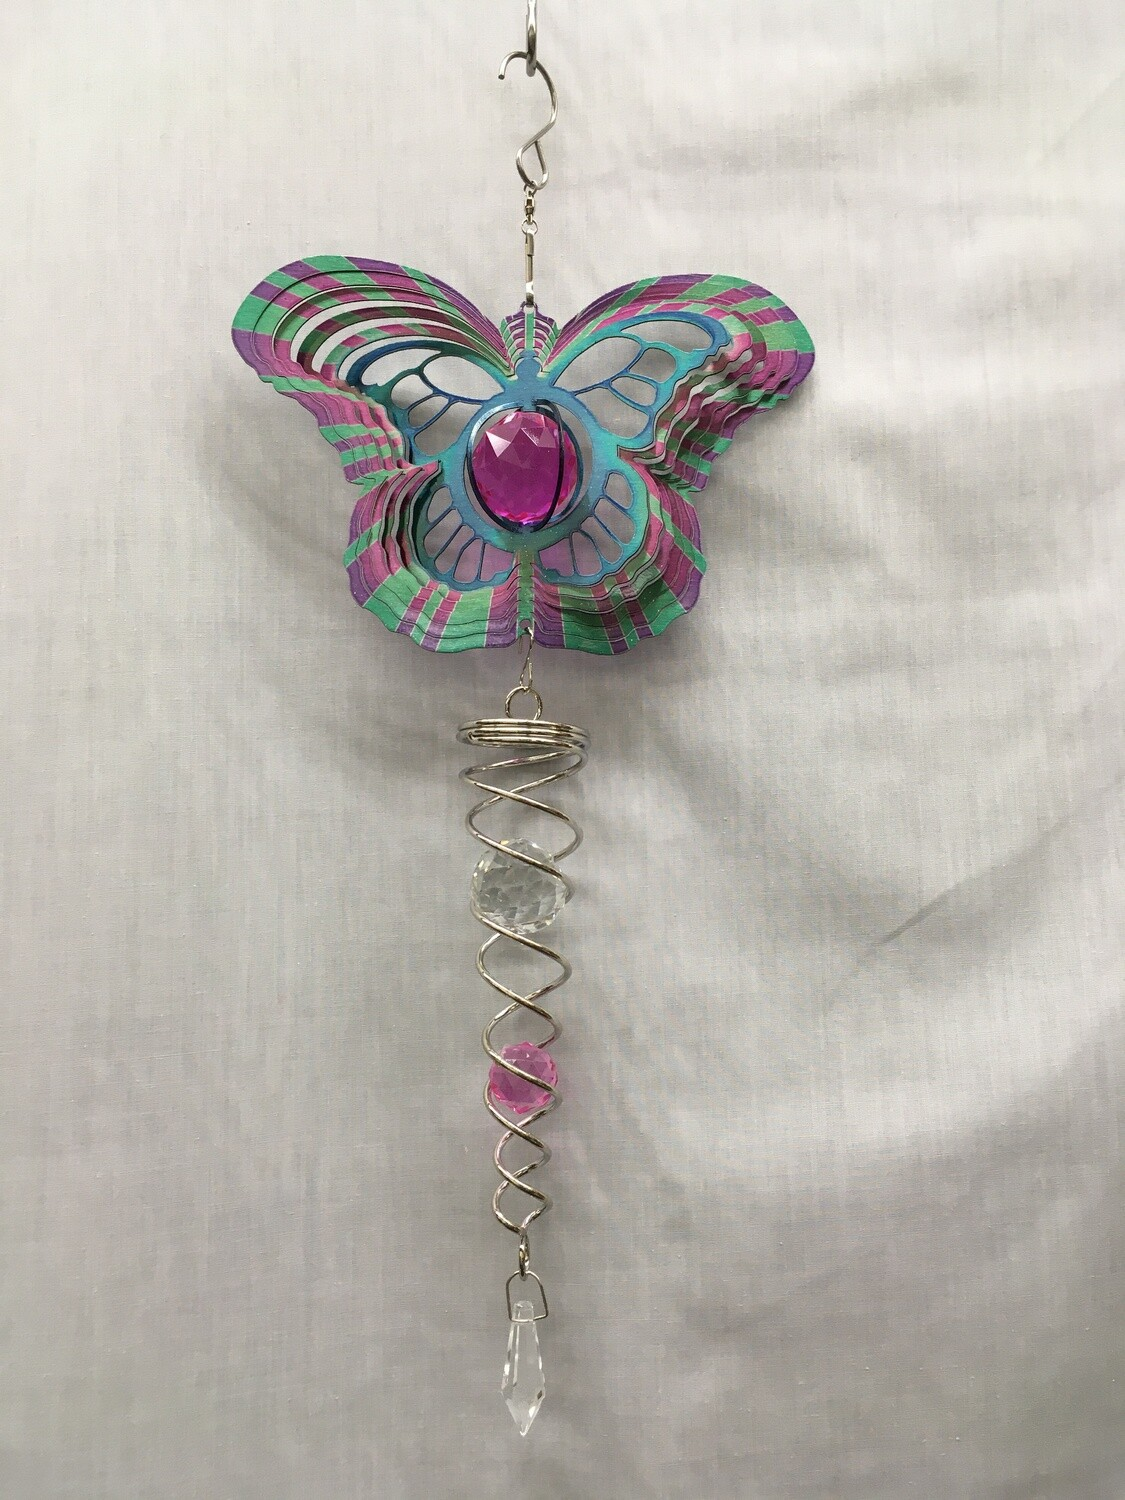 Spinner Set - Butterfly Shape Blue/Purple Wind Spinner with Twister Spiral double crystal tail